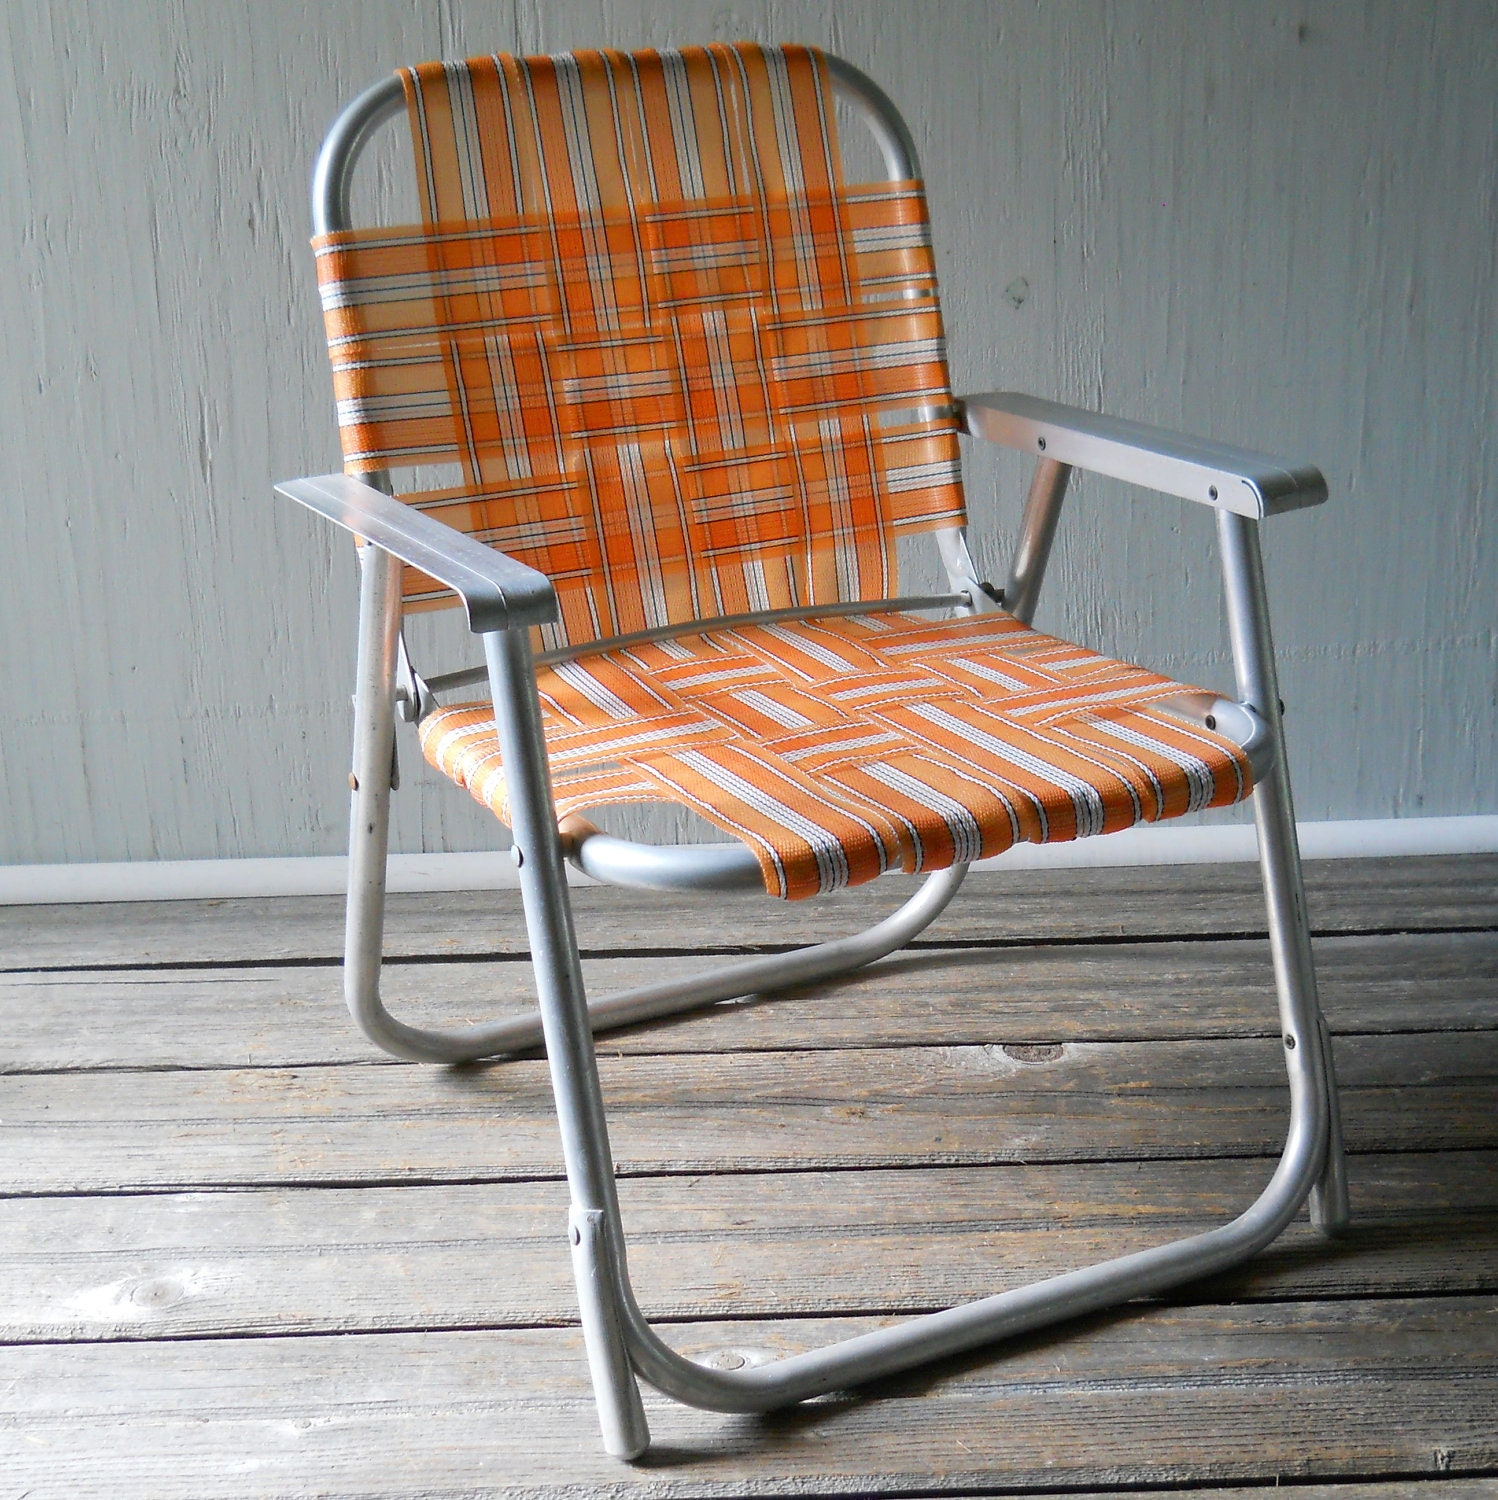 Vintage Folding Lawn Chair Child s Aluminum by lisabretrostyle2